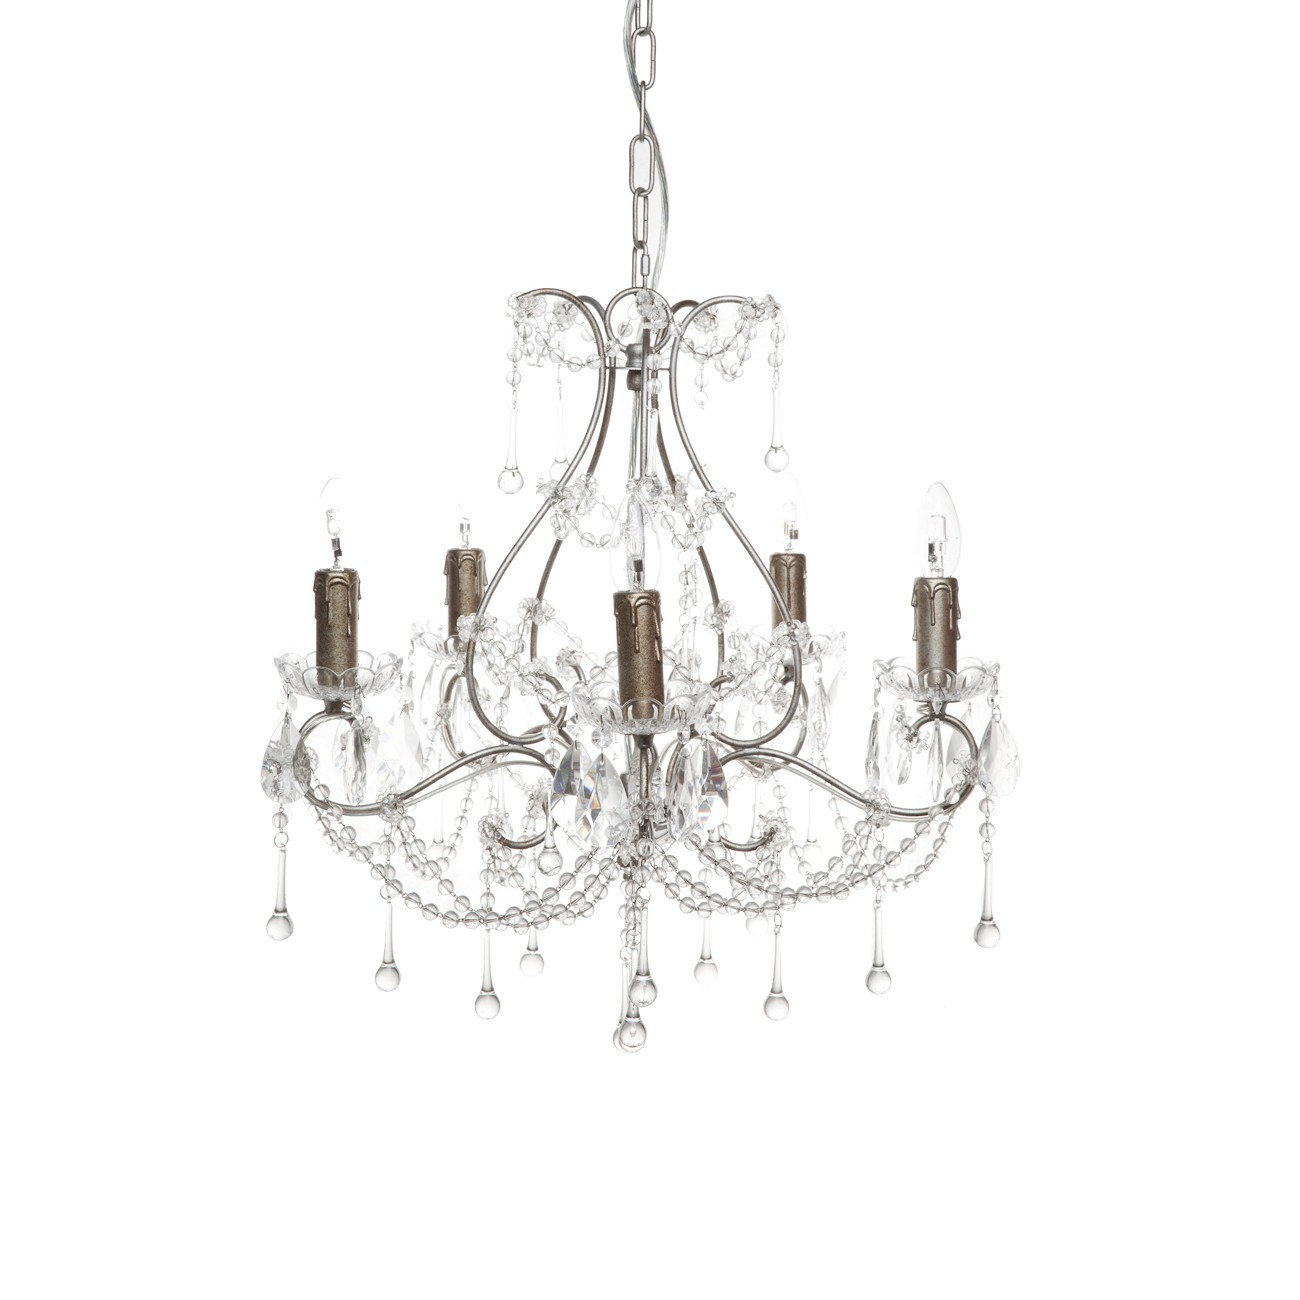 Houston Metal & Crystal Chandelier, 5 Arm, Antique Silver